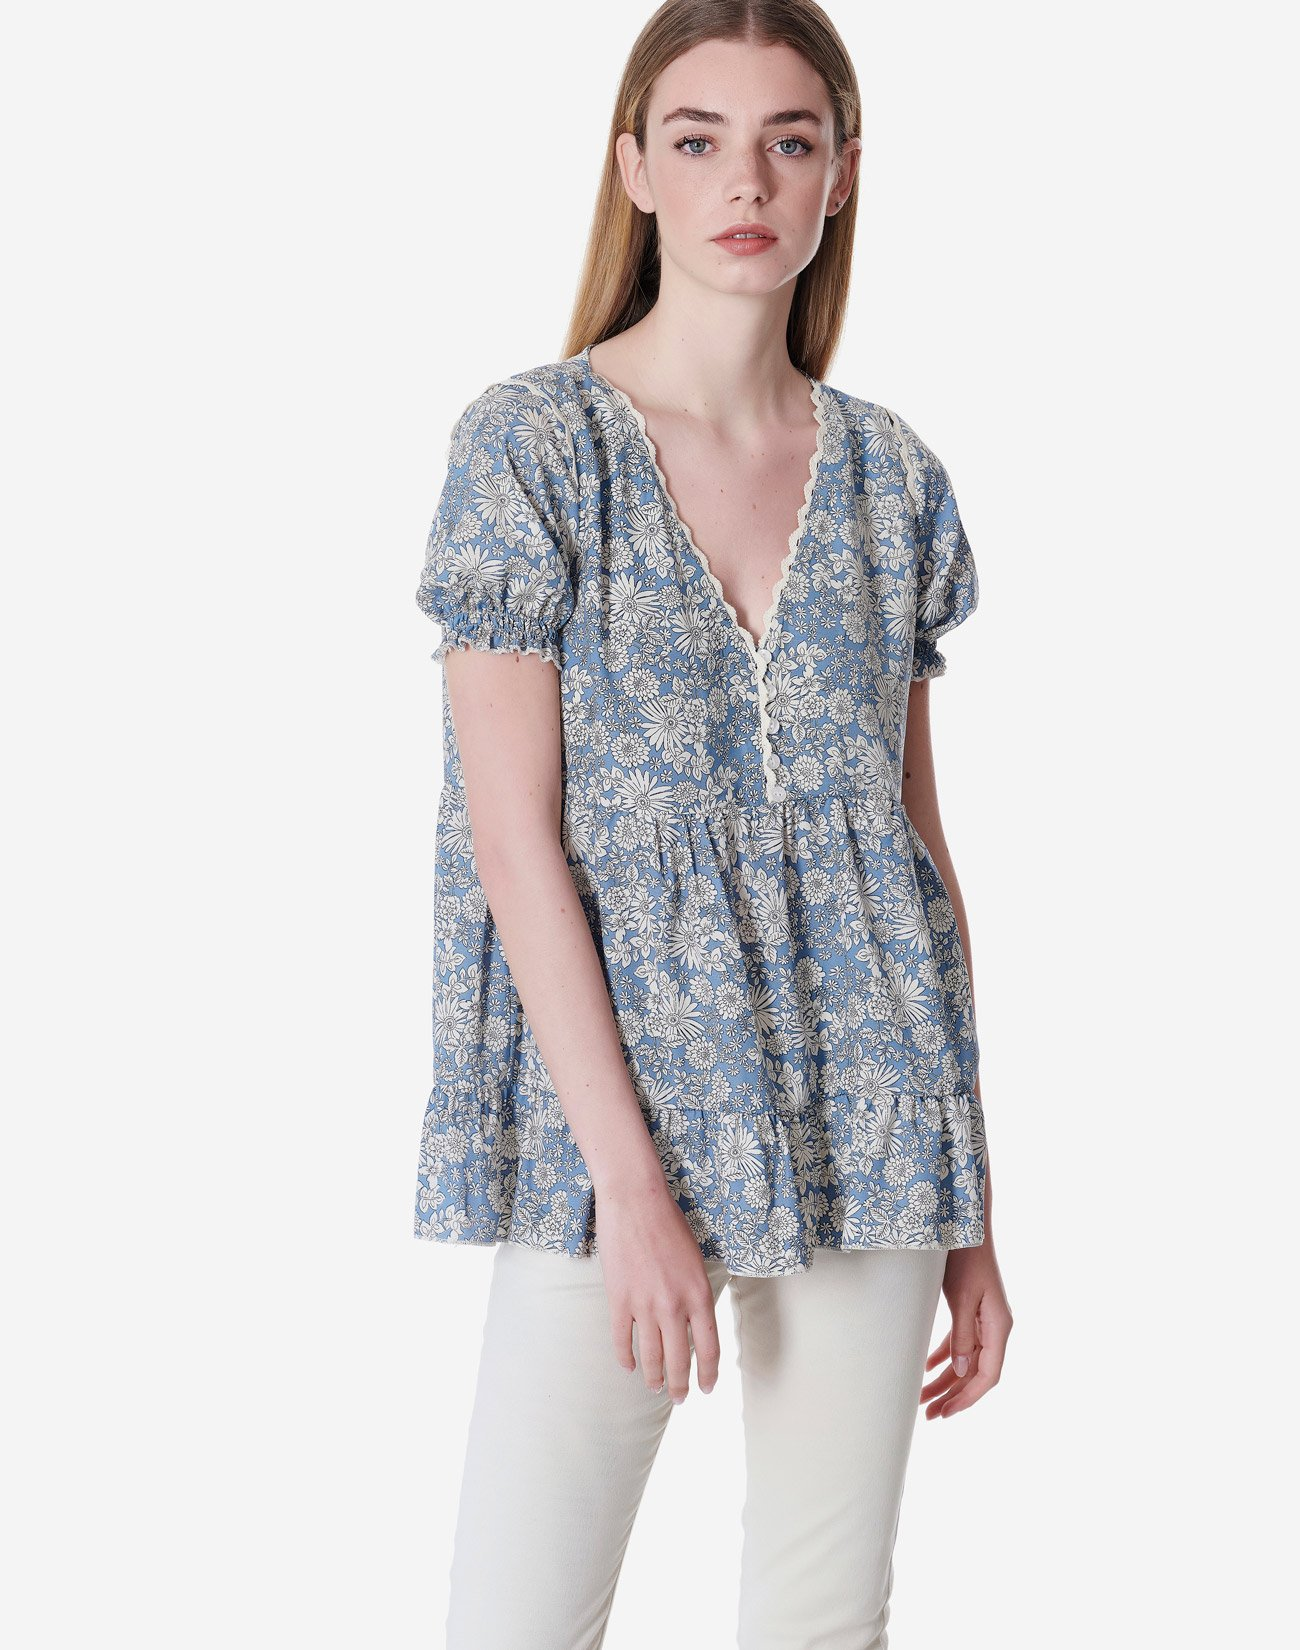 Printed top with buttons